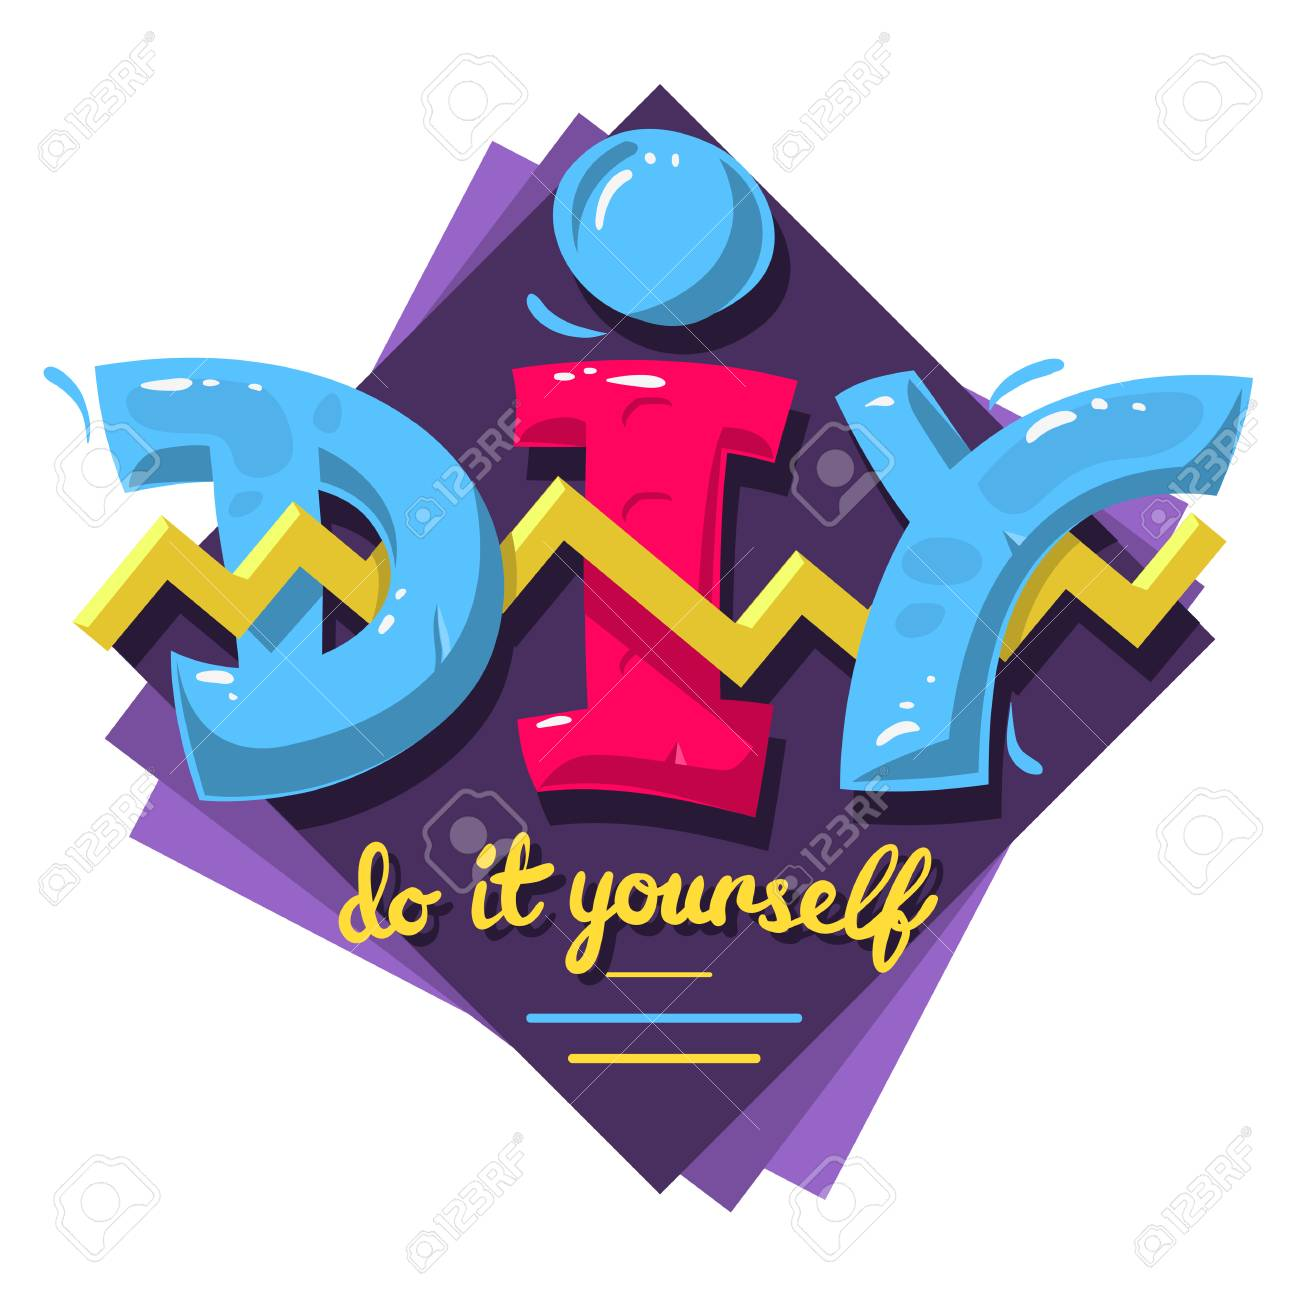 Diy acronym do it yourself 90 s vibrant colors aesthetic typ stock diy acronym do it yourself 90 s vibrant colors aesthetic typ stock photo solutioingenieria Choice Image